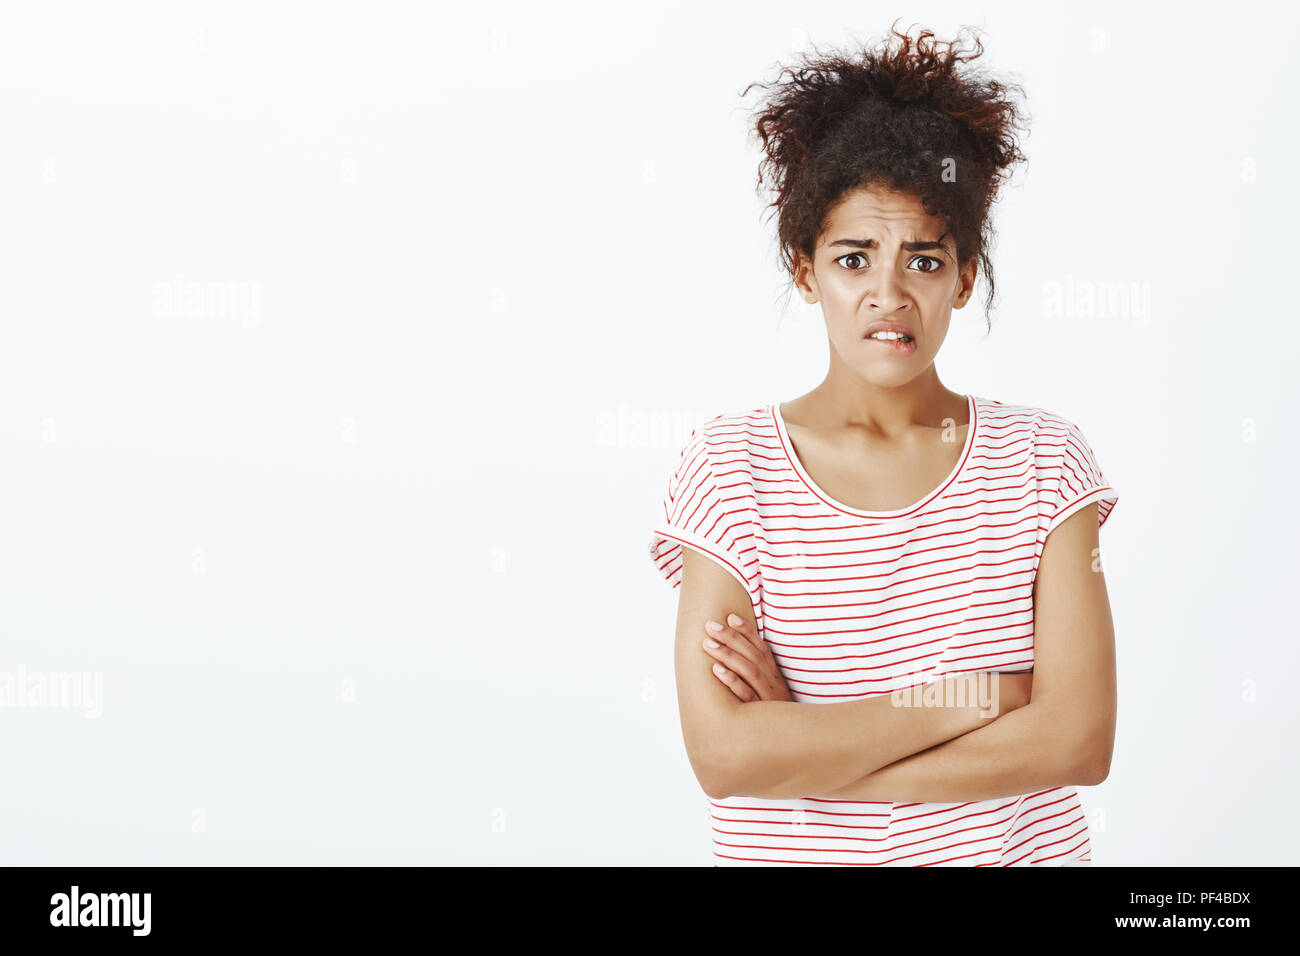 Studio shot of anxious cute dark-skinned woman in striped t-shirt, holding hands crossed on chest, frowning and grimacing while feeling worried and upset, nervous someone know secret - Stock Image